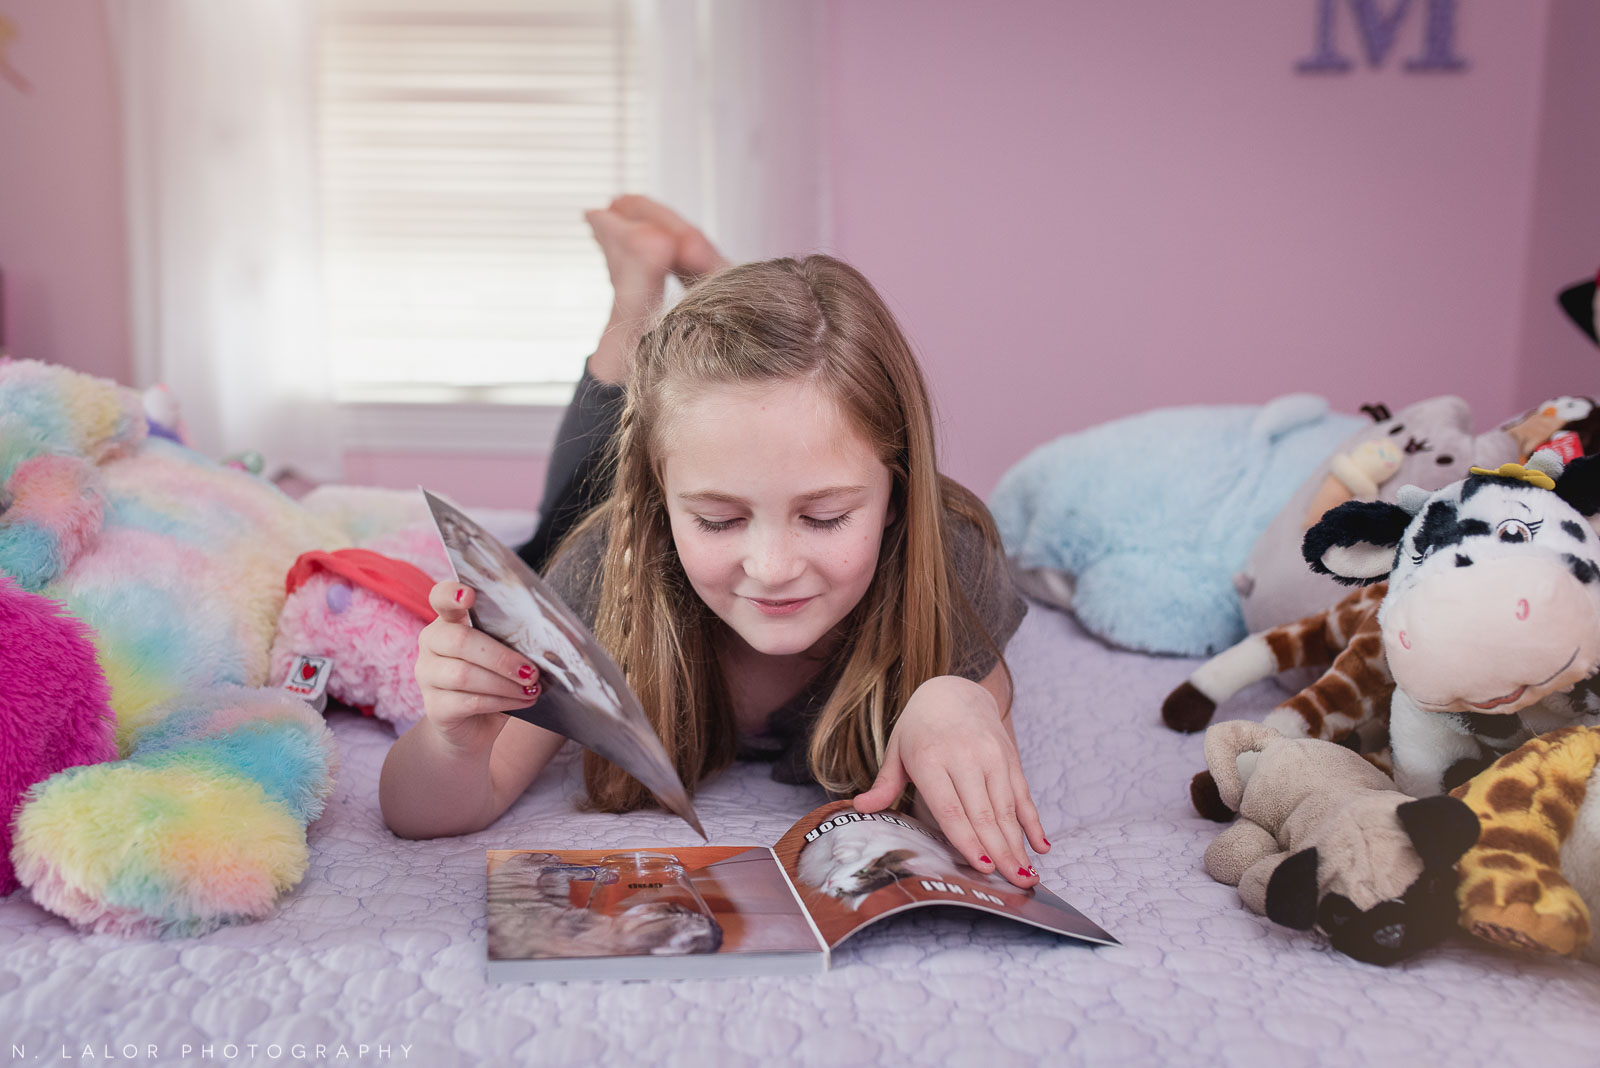 Tween girl reading a book on her bed. Editorial-style family session by N. Lalor Photography.